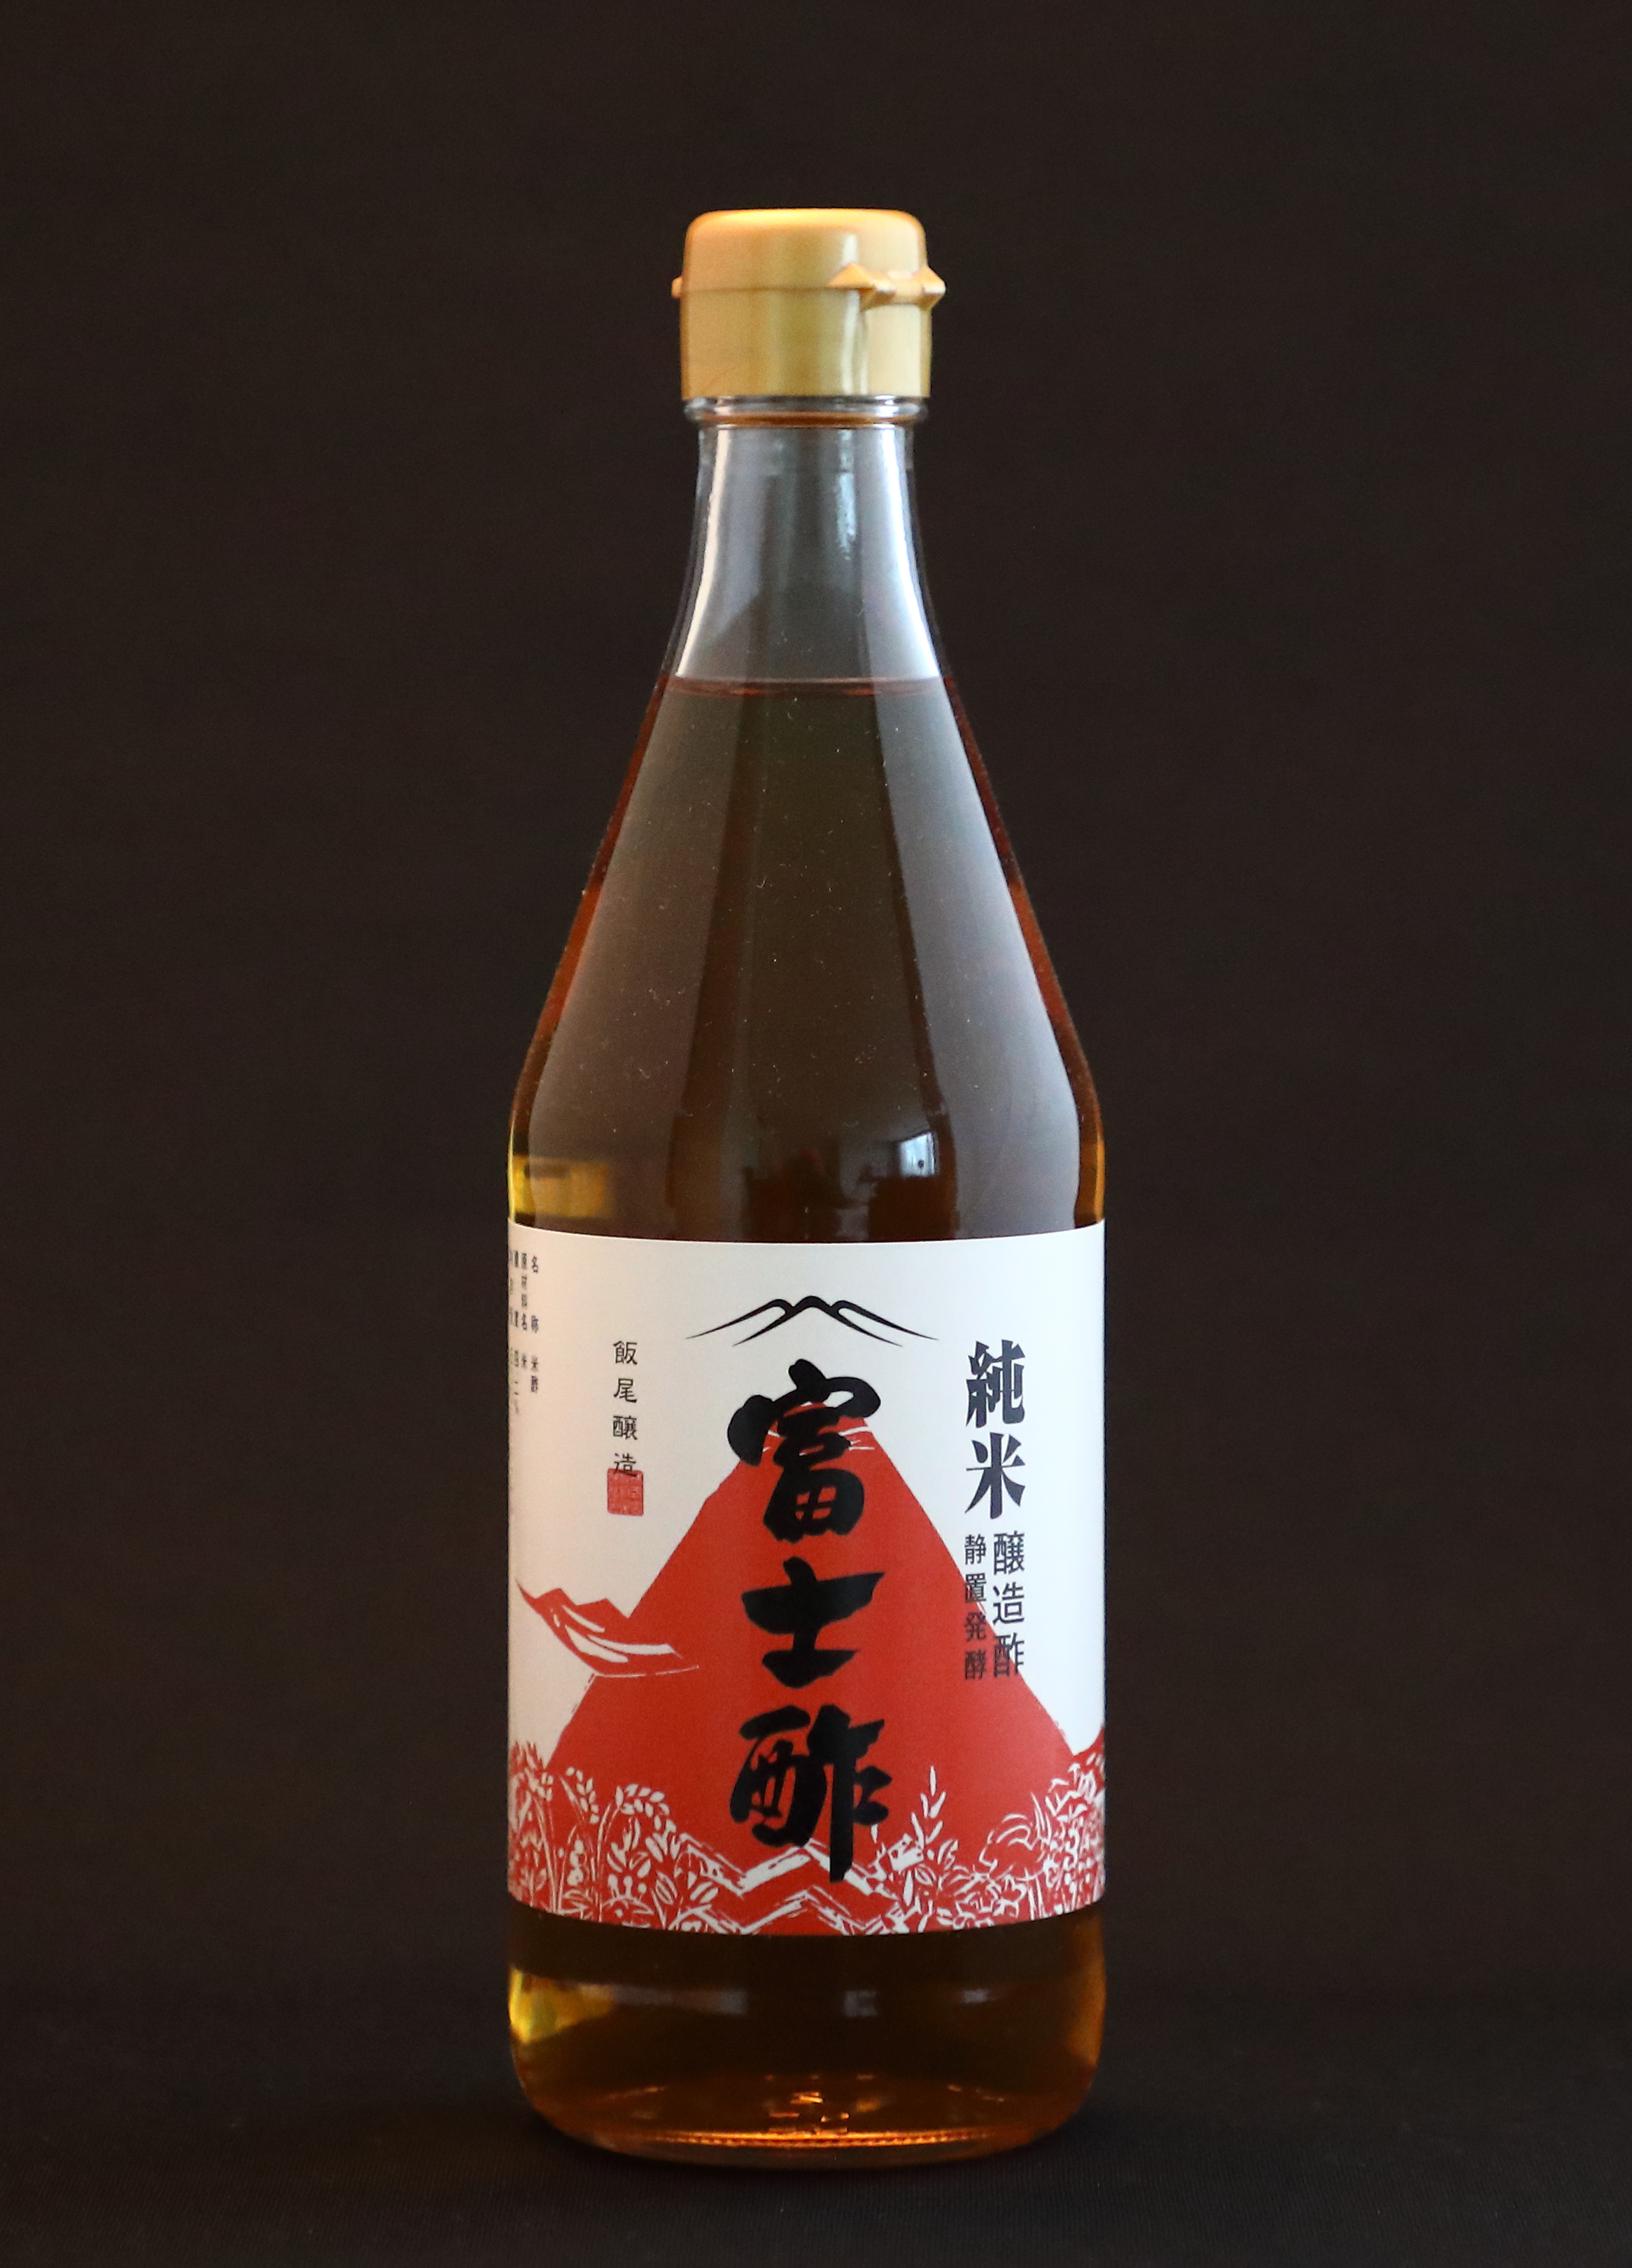 Junmai Fujisu (Pure Rice Vinegar) - Fragrant, soft, with a slow mild sourness, it is specially designed for cooking and can tolerate high heat and long cooking. Add a few drops to water to macerate onions, shallots, and garlic and to preserve the color of raw fruits and vegetables (other than green ones). Use a few spoons in soups, stews, stir fries, sweet-sour and pasta dishes to reveal the nuanced flavors of a medley of ingredients. Use it in marinades and braises to tenderize and enrich meats. Add a touch when making noodles to lighten the starch and minimize the gluten released, helping them be soft yet chewy. Add to pasta water to prevent the noodles from sticking.